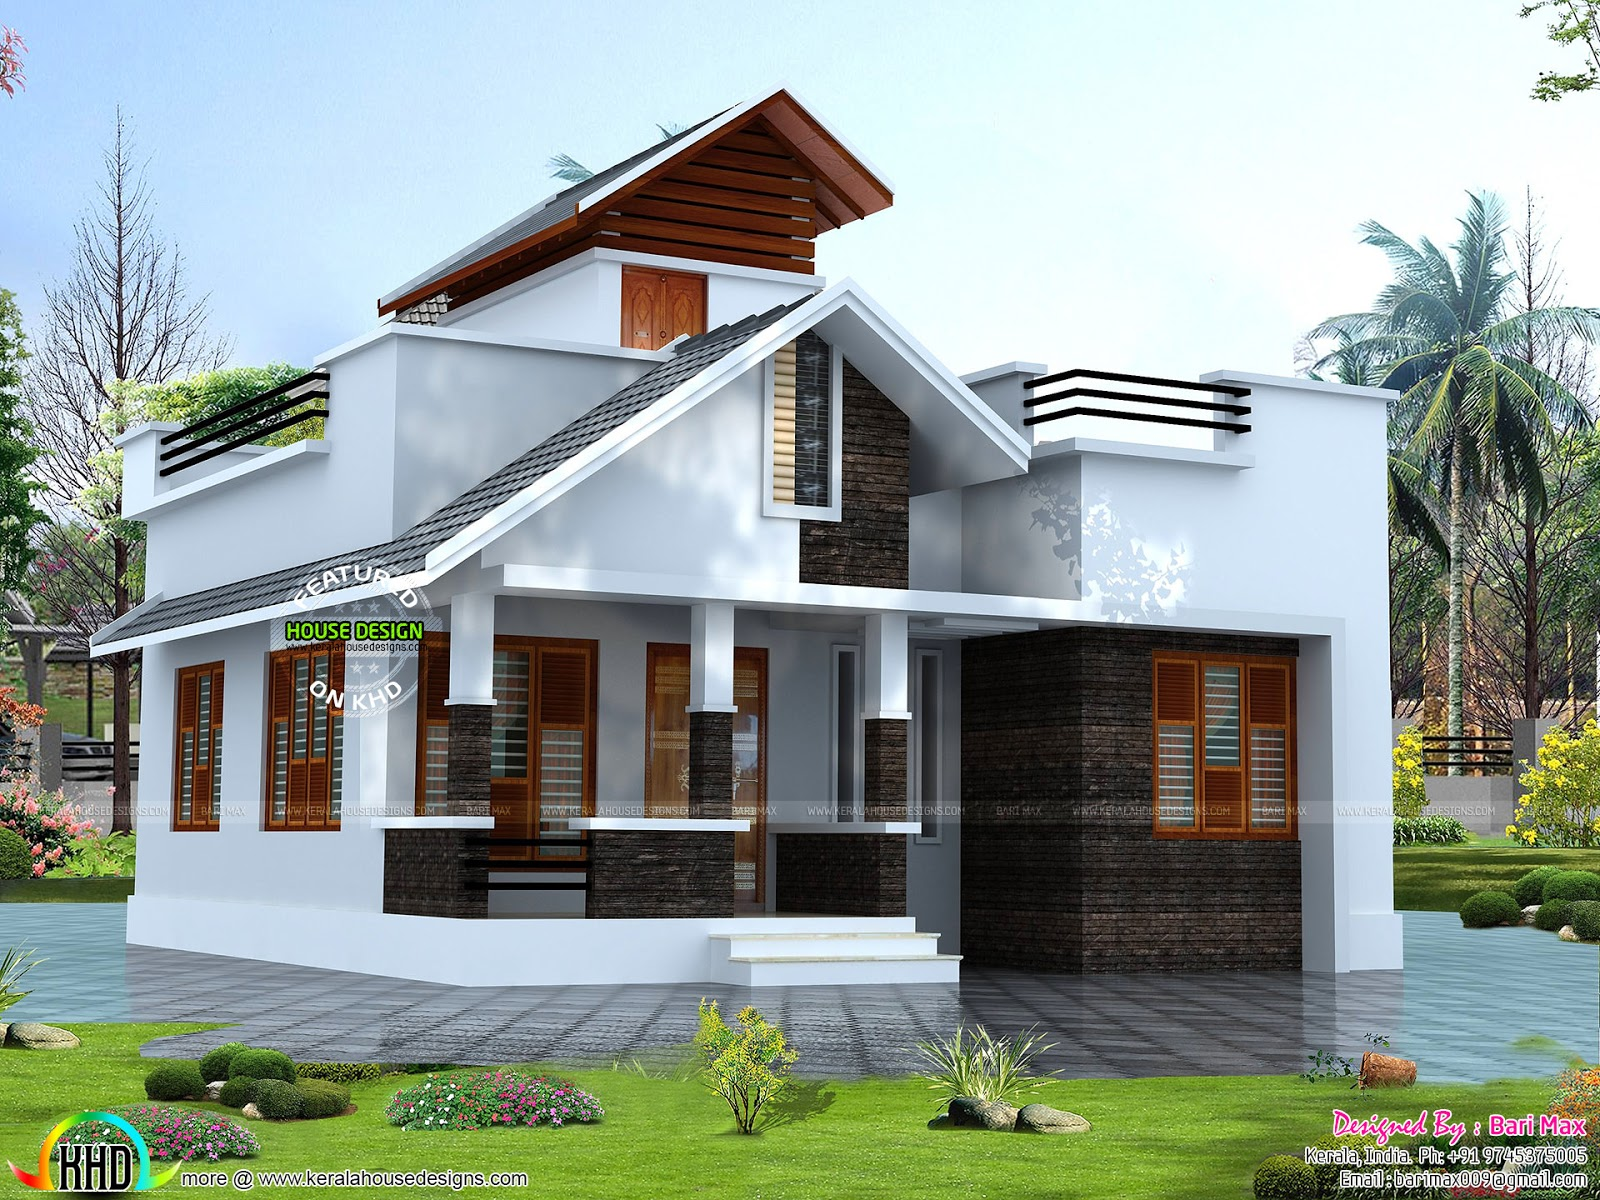 Rs 12 lakh house architecture kerala home design and for Home designs kerala architects